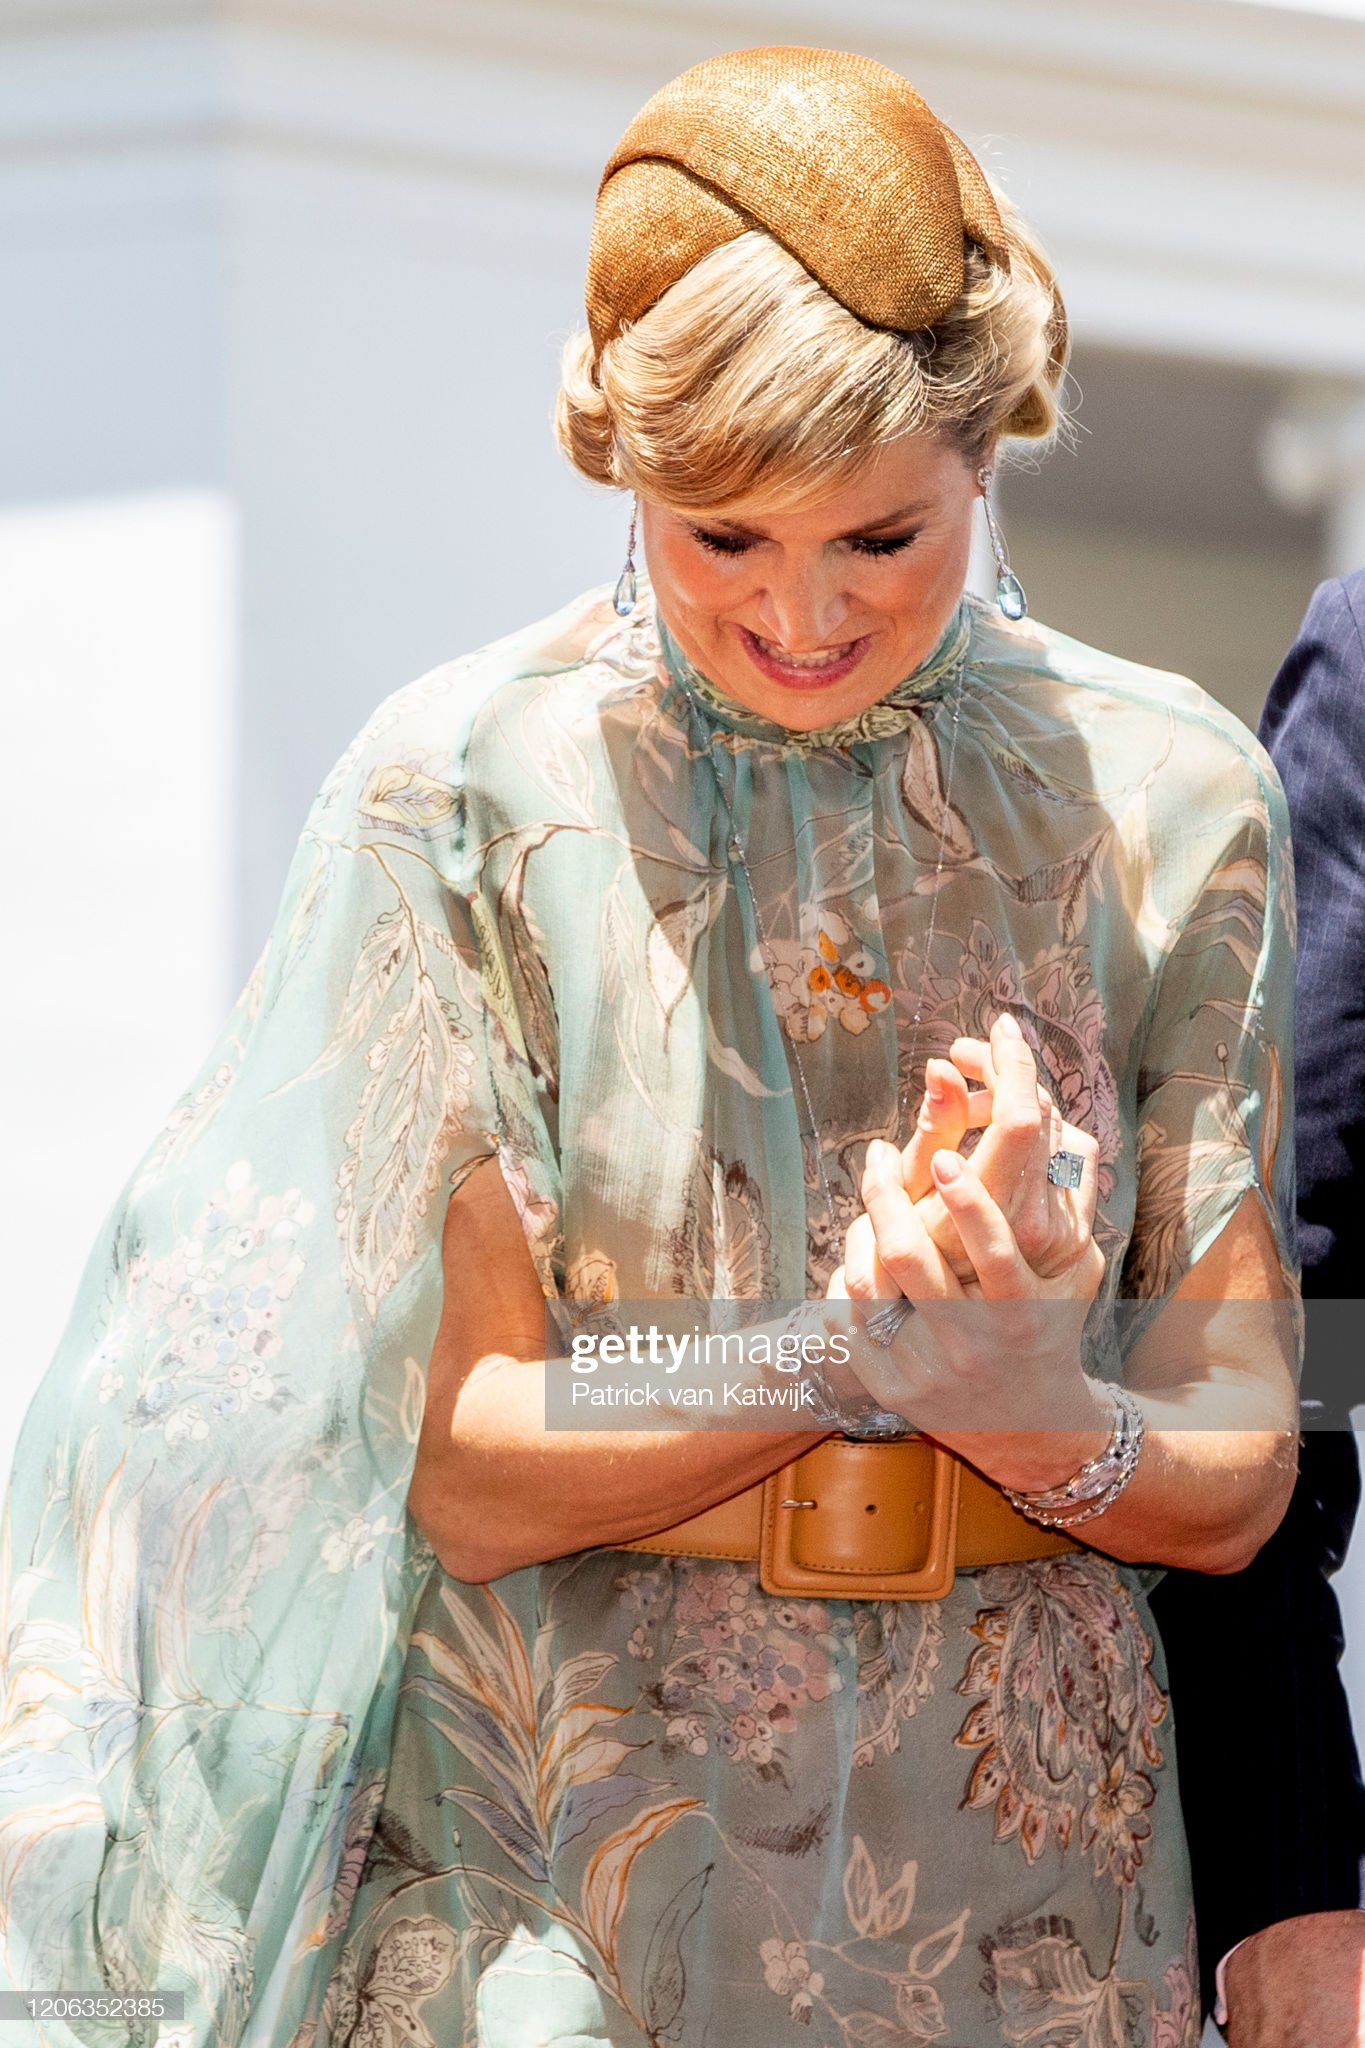 https://media.gettyimages.com/photos/king-willemalexander-of-the-netherlands-are-welcomed-by-president-picture-id1206352385?s=2048x2048